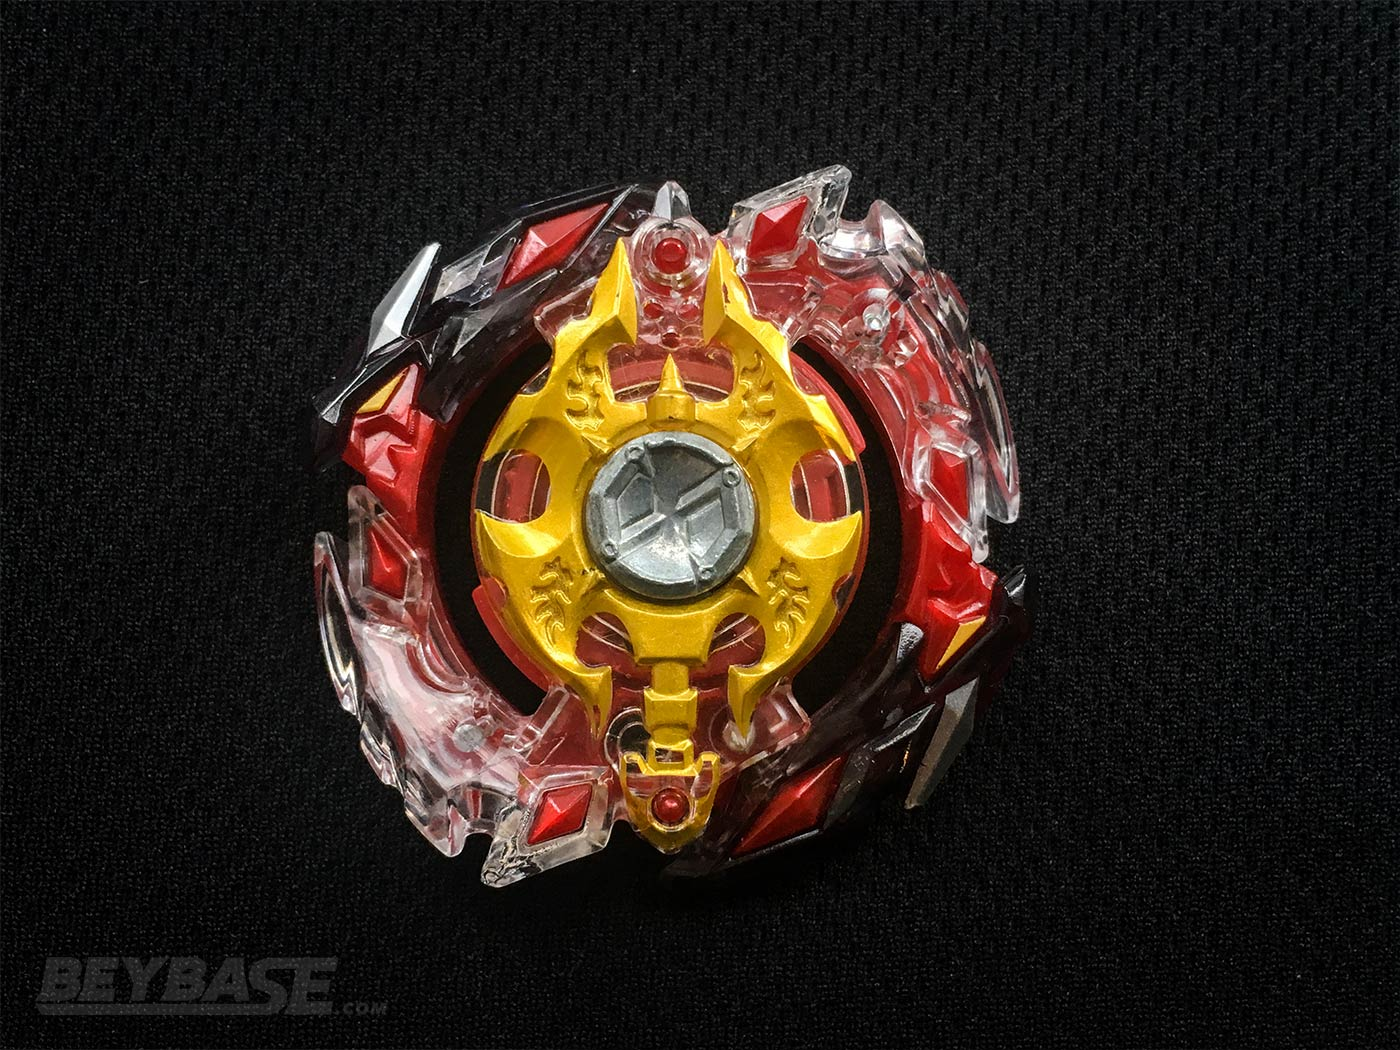 Beyblade Burst Legend Spriggan Layer – Top View